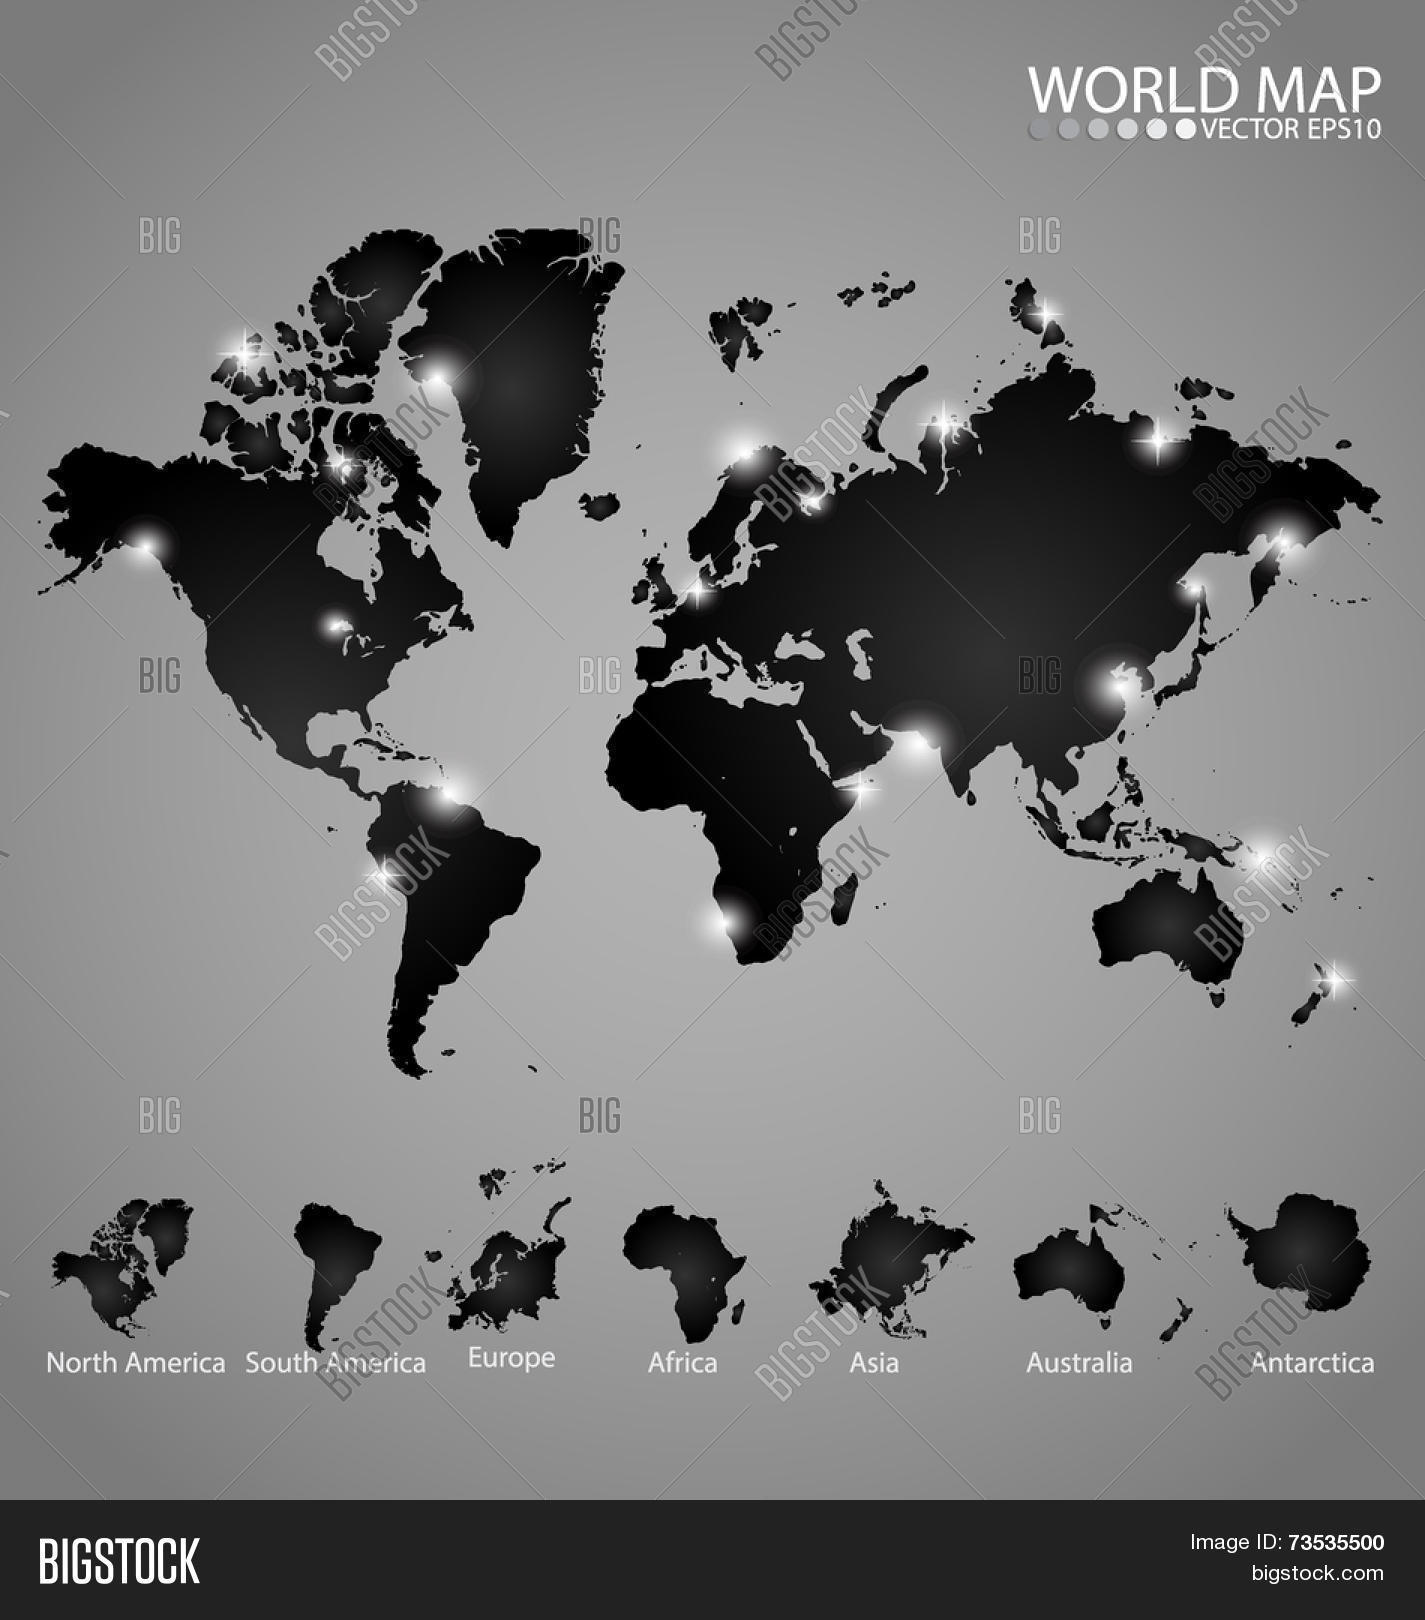 Modern world map vector photo free trial bigstock modern world map with continents atlas north america south america europe africa gumiabroncs Image collections